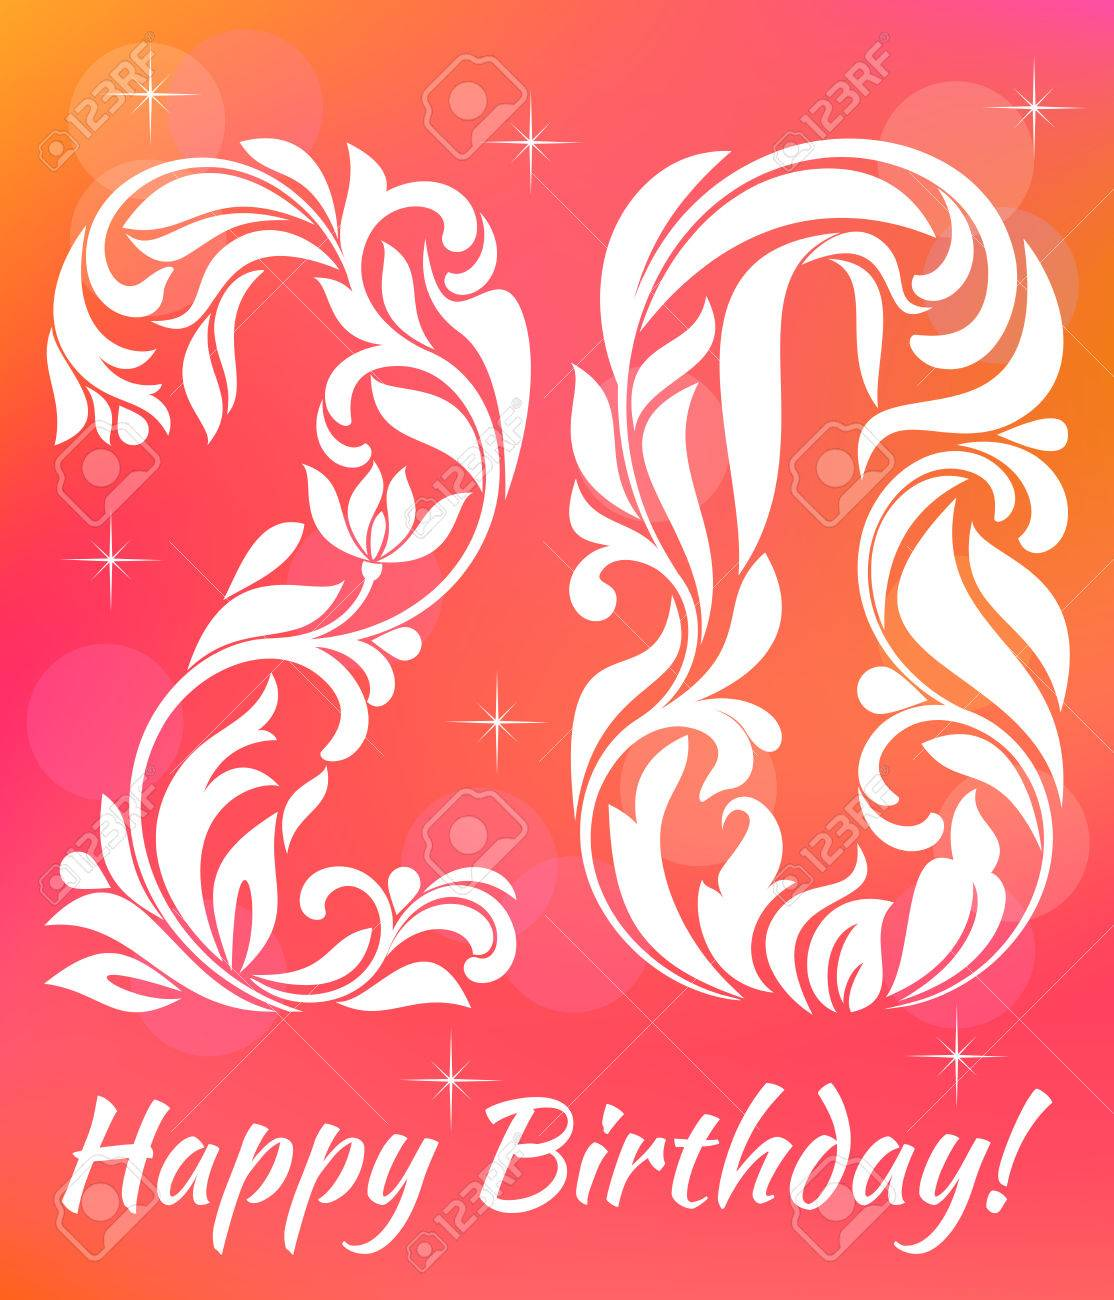 Bright Greeting Card Invitation Template Celebrating 20 Years Birthday Decorative Font With Swirls And